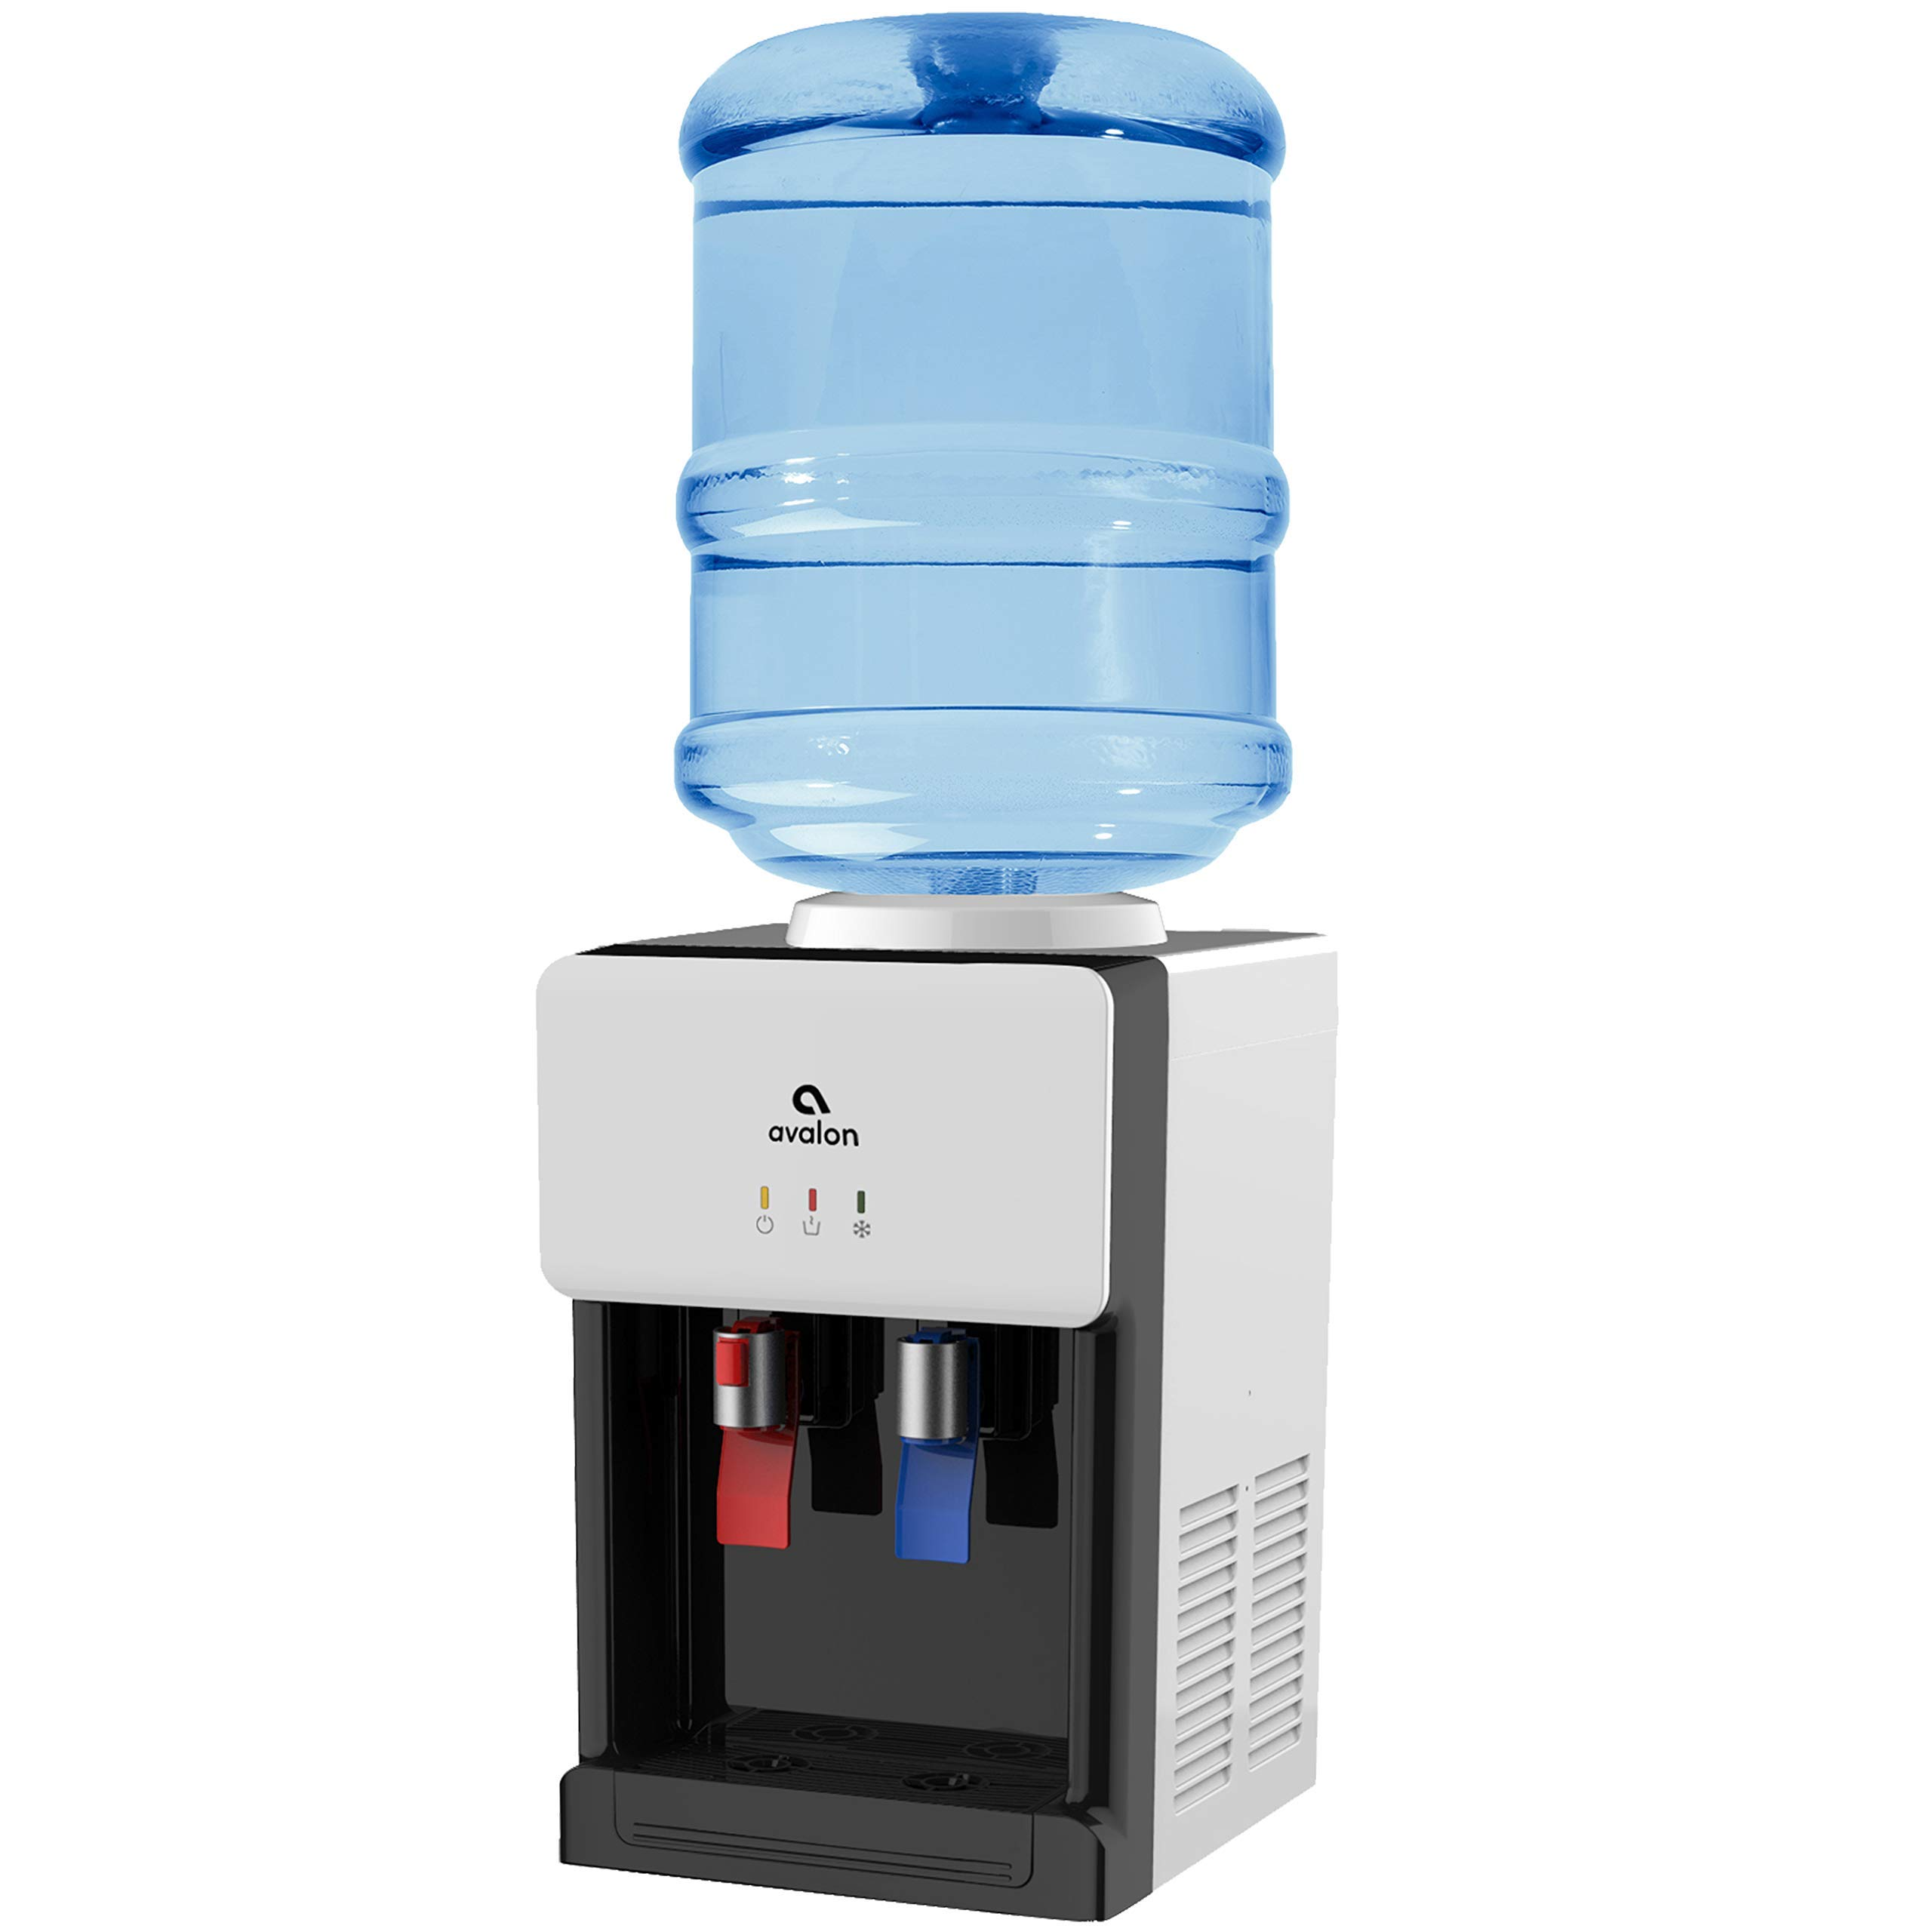 Avalon Premium Hot/Cold Top Loading Countertop Water Cooler Dispenser With Child Safety Lock. UL/Energy Star Approved- White - A1CTWTRCLRWHT (Renewed) by Avalon